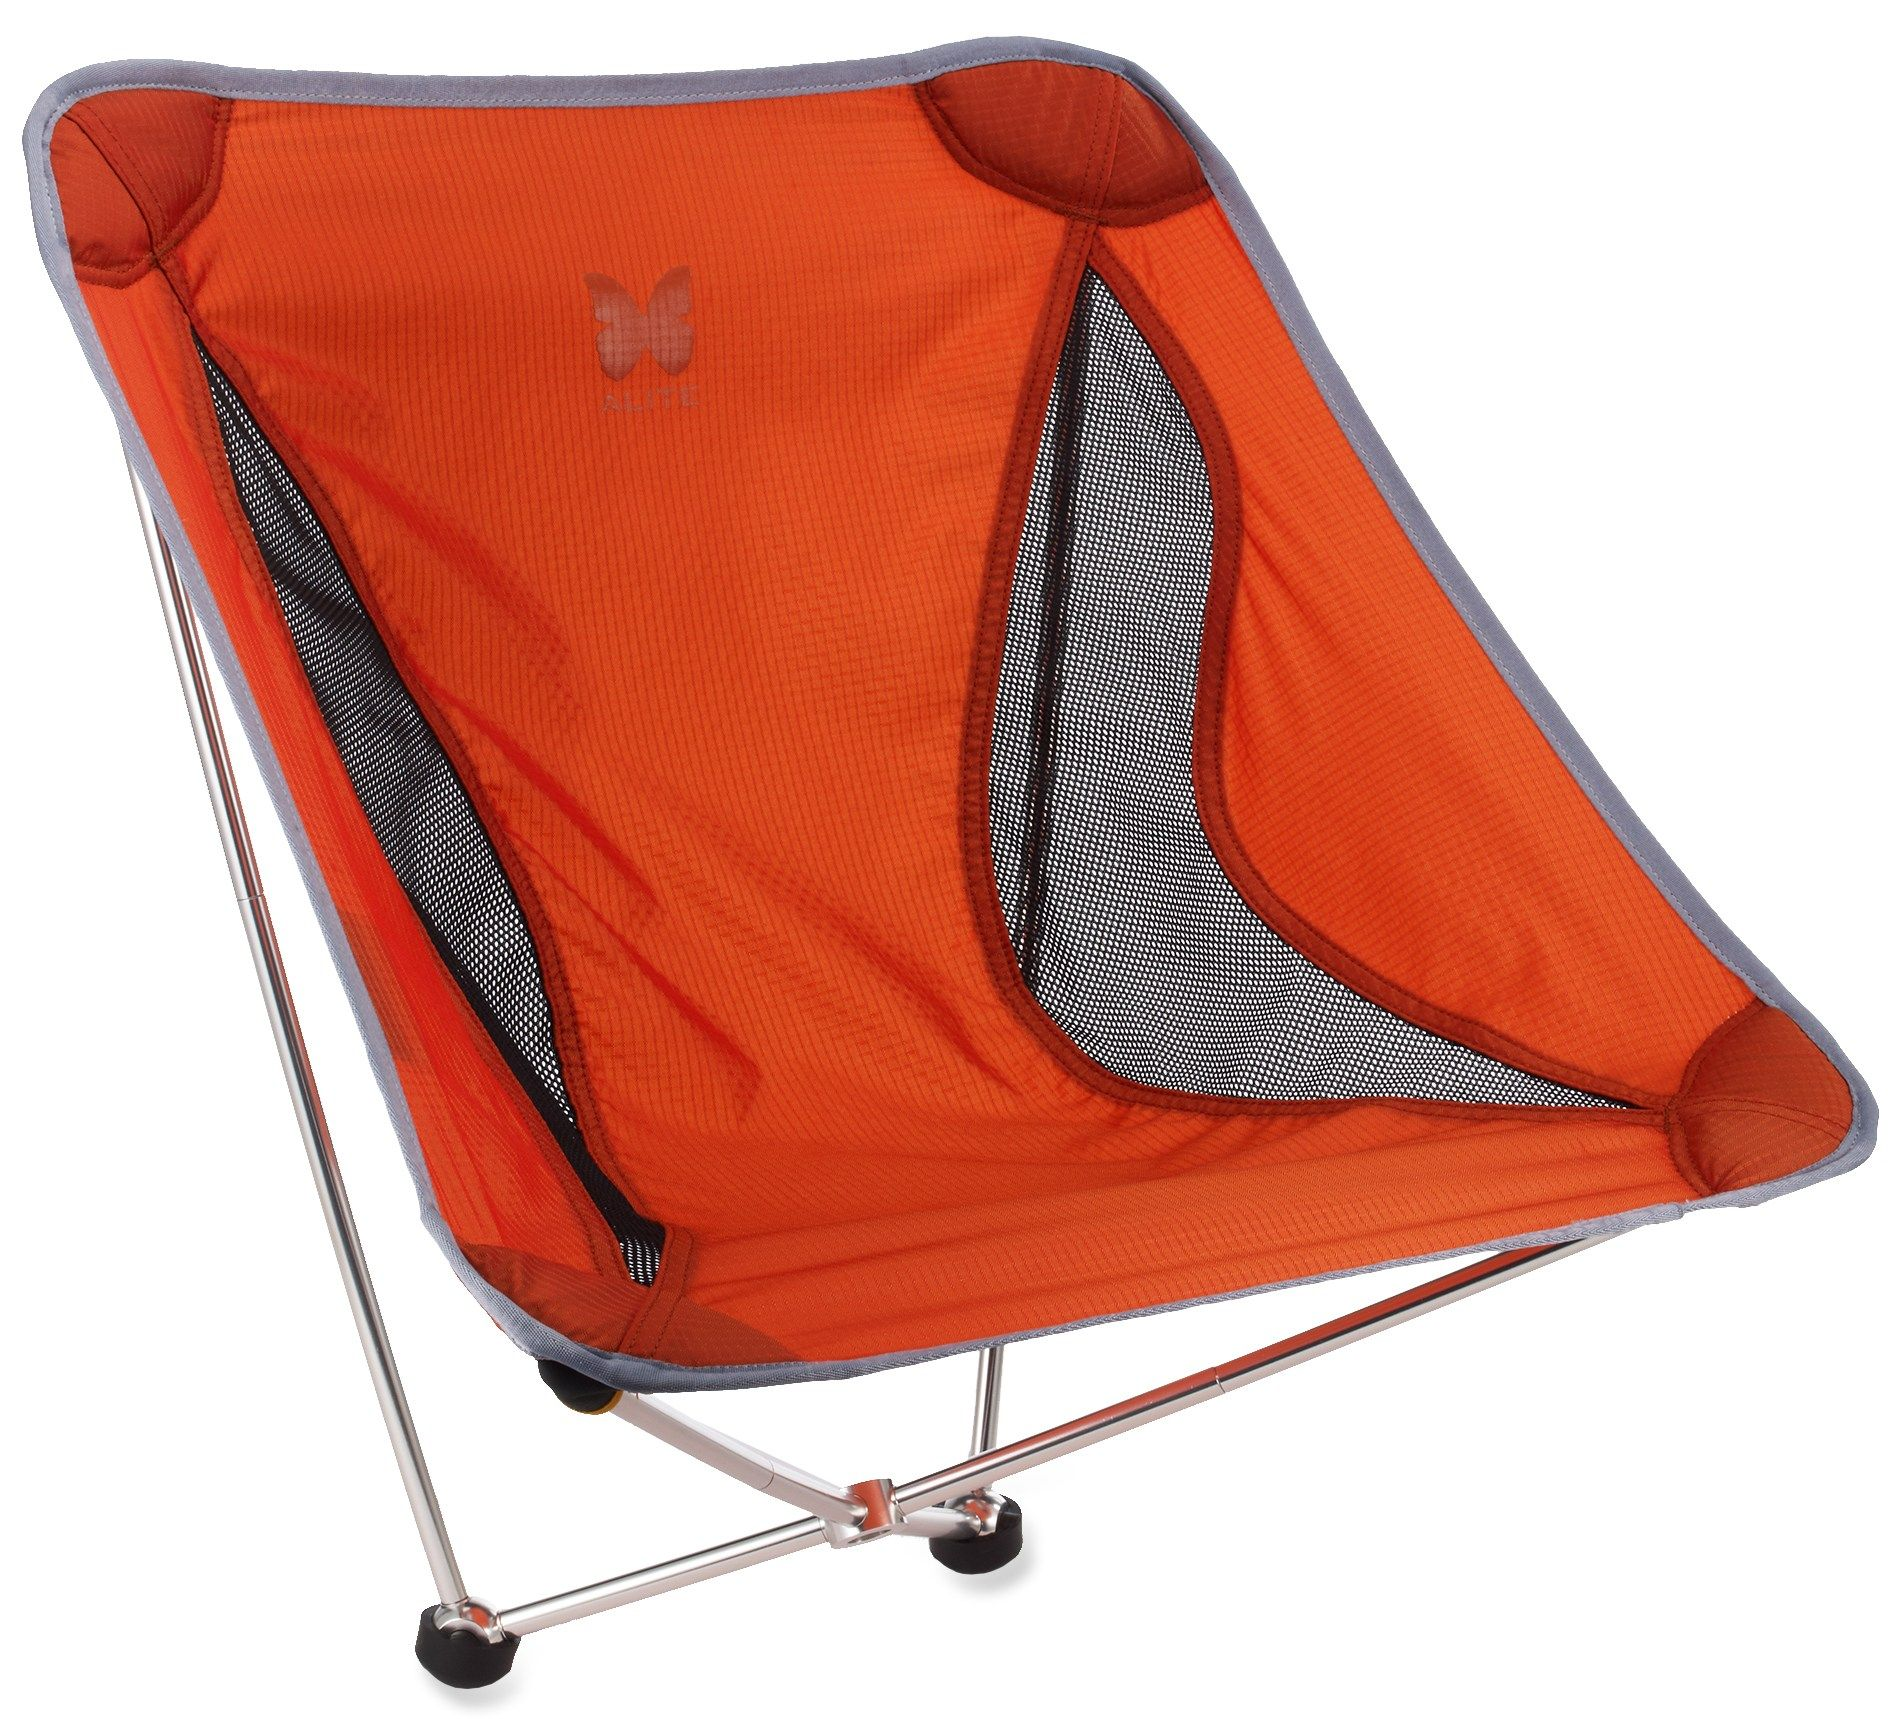 Kick back and relax at the c&ground or summer concert with the portable Alite Monarch Butterfly chair.  sc 1 st  Pinterest & Alite Monarch Butterfly Chair | REI Co-op | Concert Camping ...